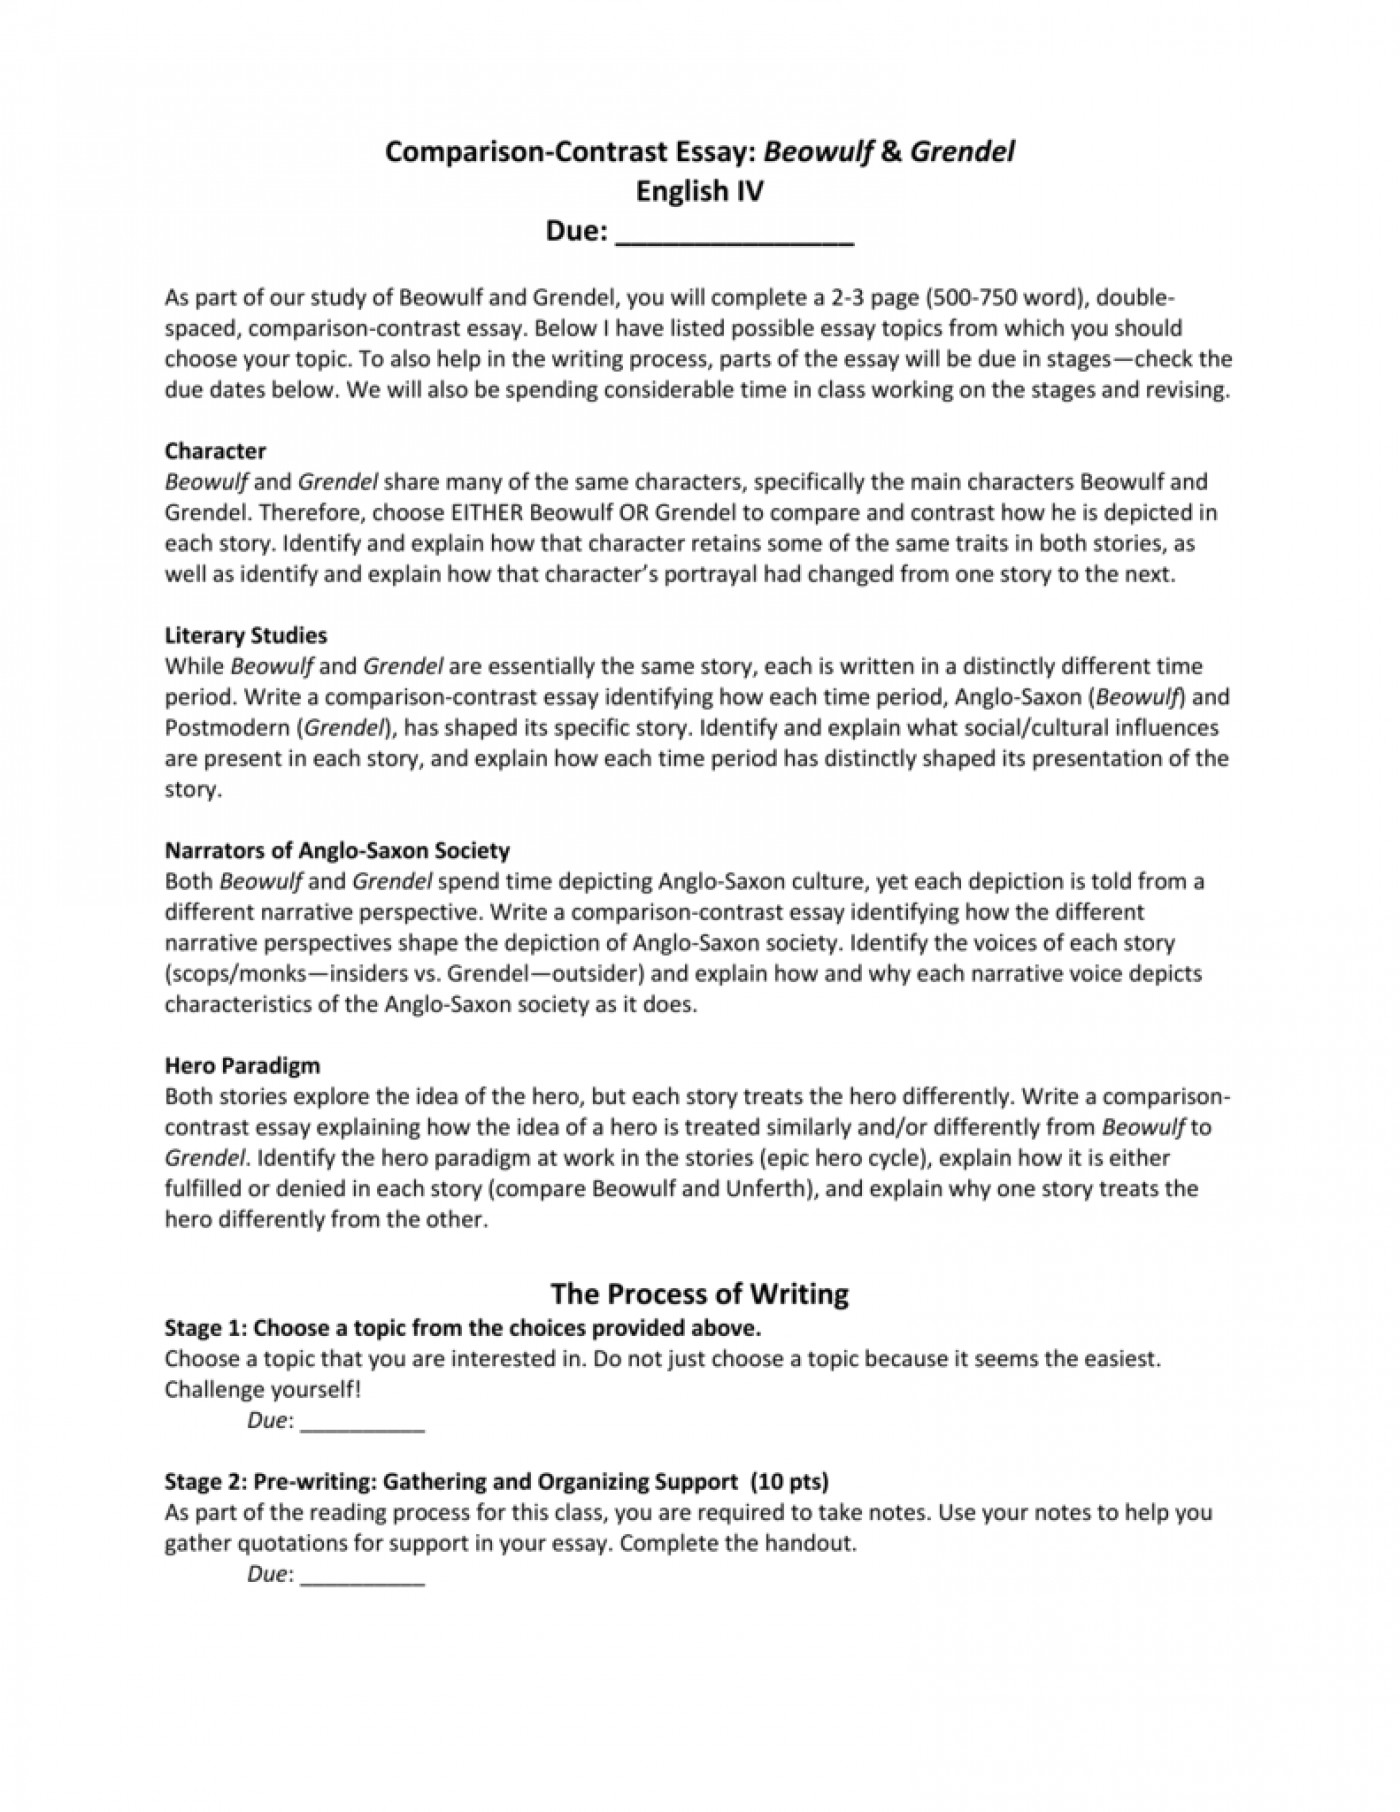 010 Compare And Contrast Essay 008061732 1 Frightening Outline Block Method Ideas High School Template For Middle 1400